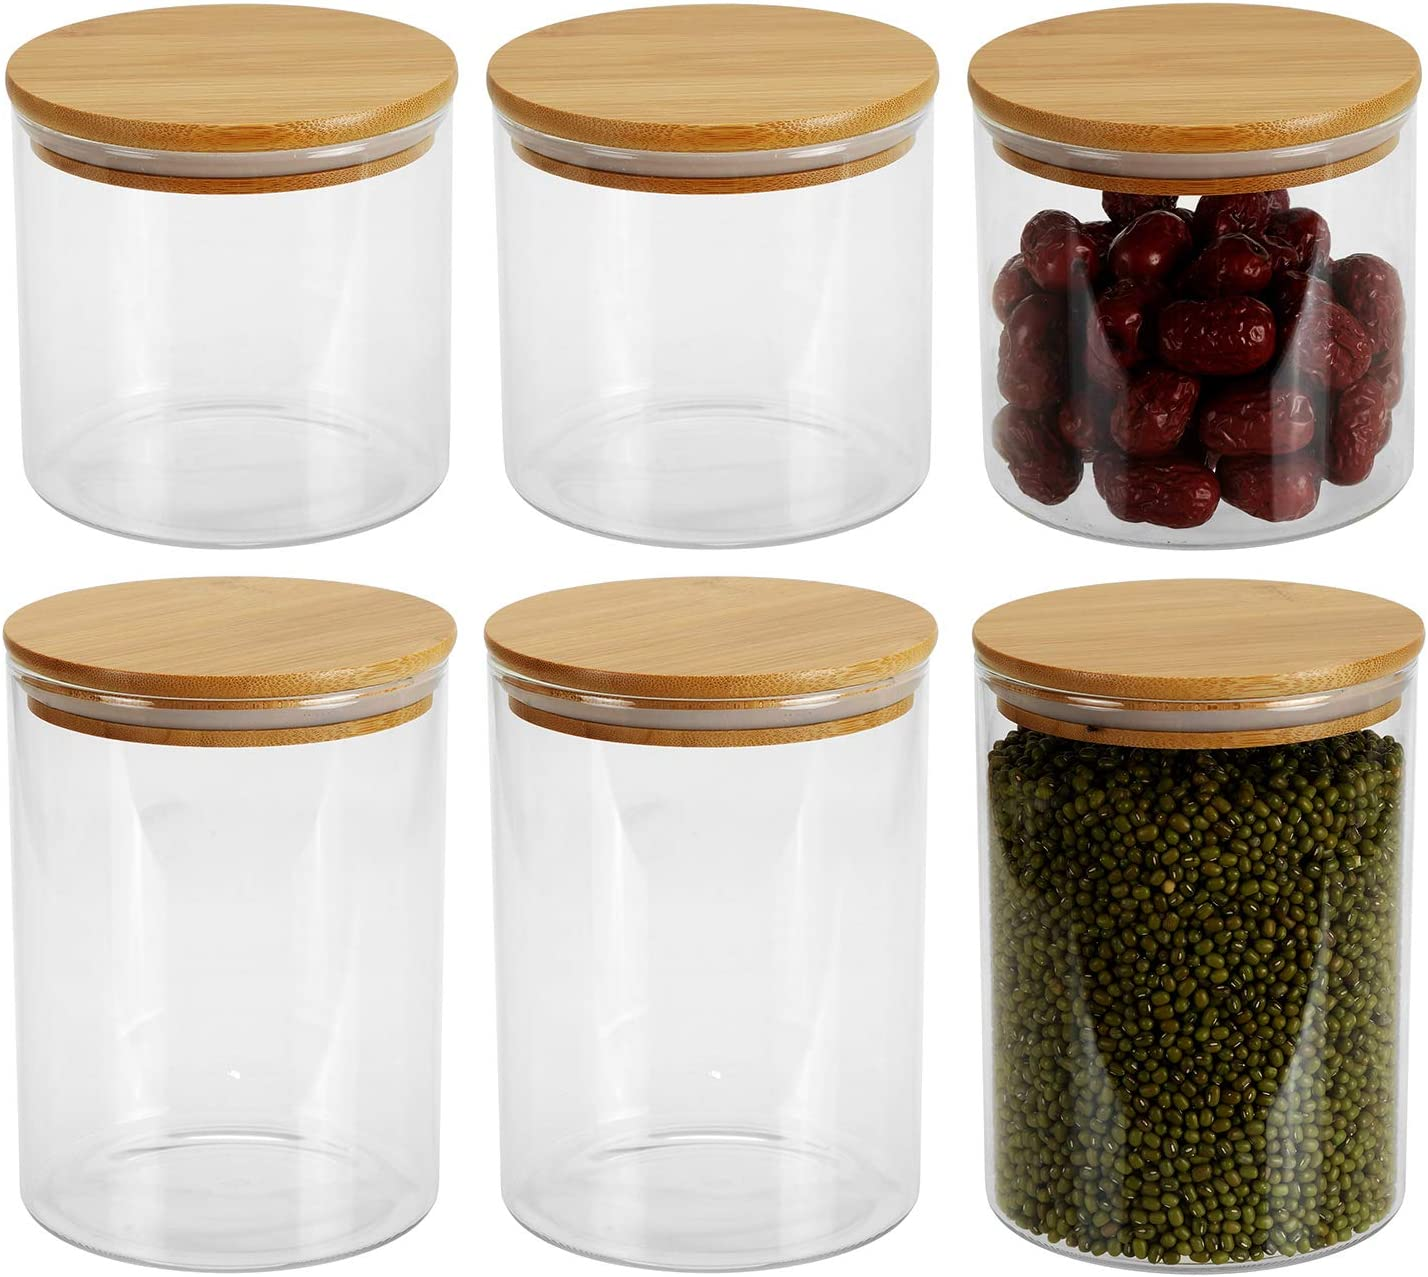 Lawei Set of 6 Glass Food Jars with Bamboo Lids - 36oz 55oz Airtight Glass Canisters Glass Storage Jars for Candy Cookie Rice Beans Snacks